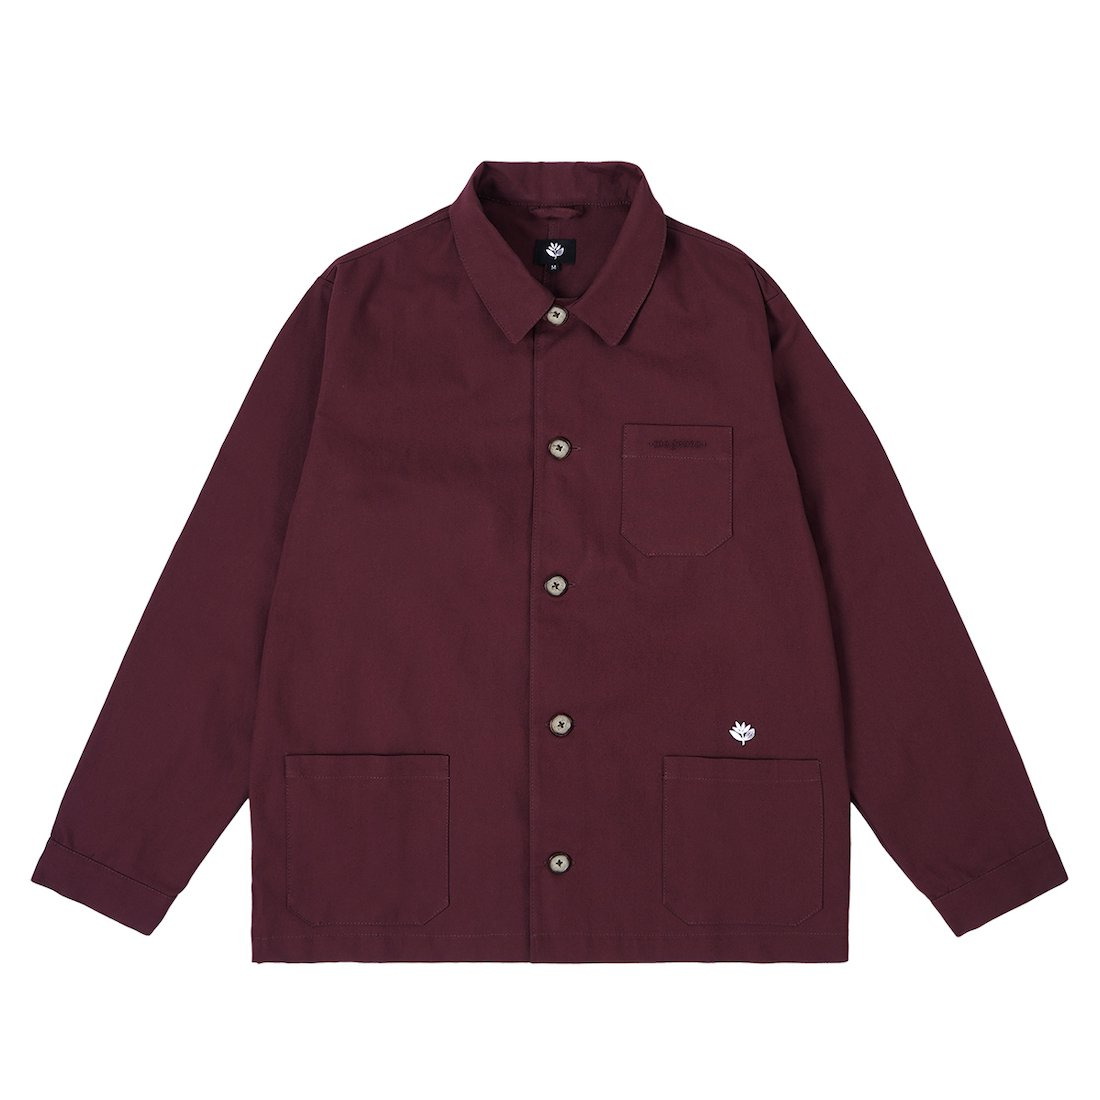 【Magenta Skateboards】Atelier Jacket - Wine